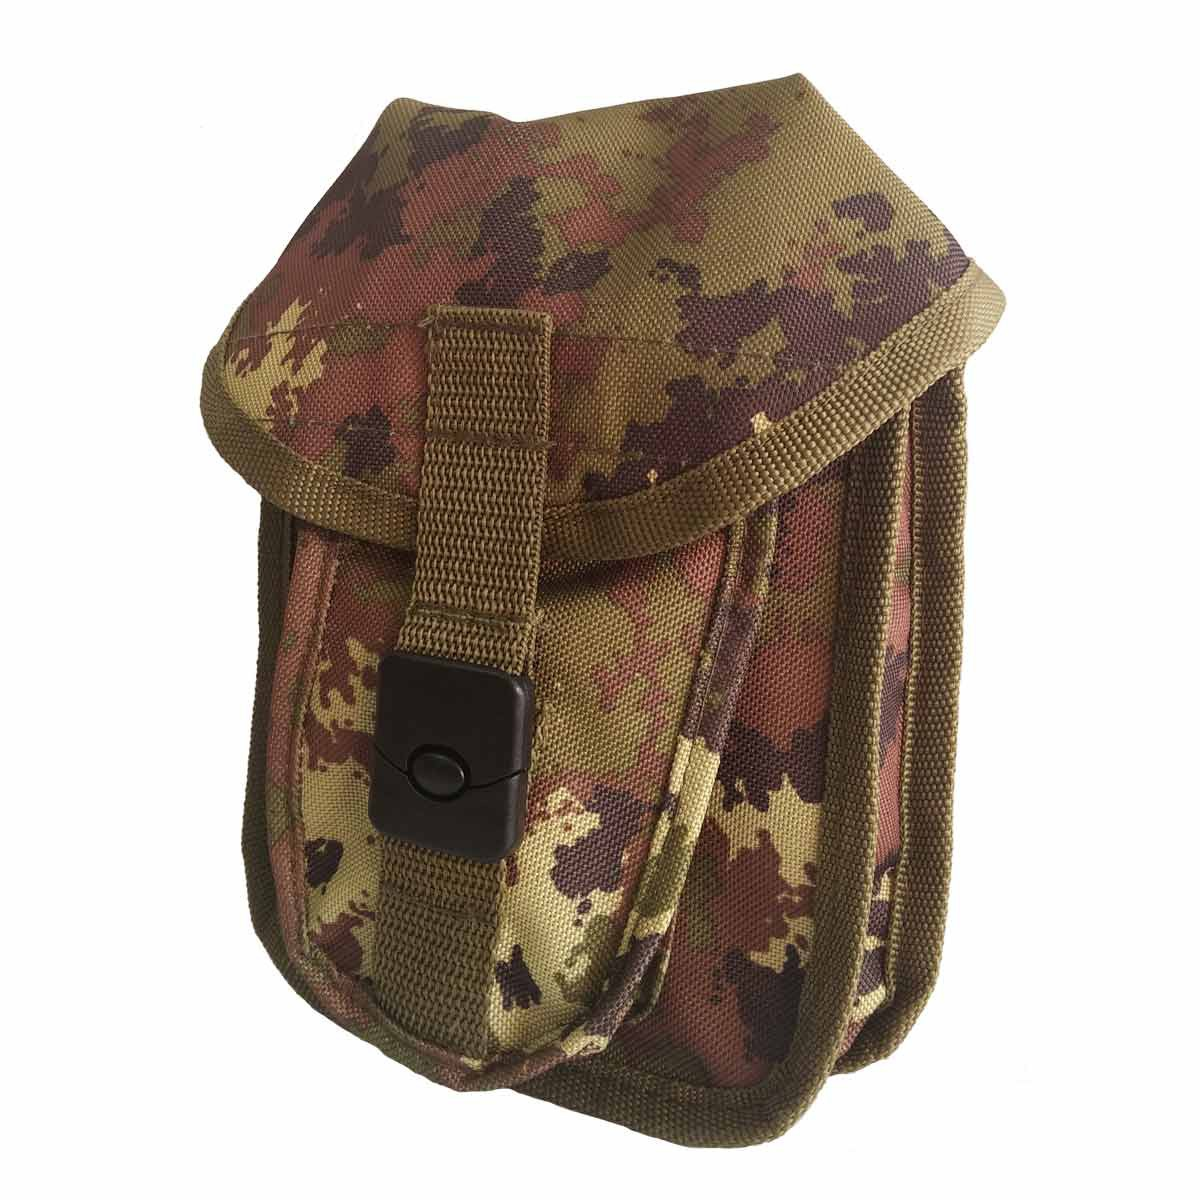 Tasca Utility Softair Porta oggetti in cordura Vegetato Italiano